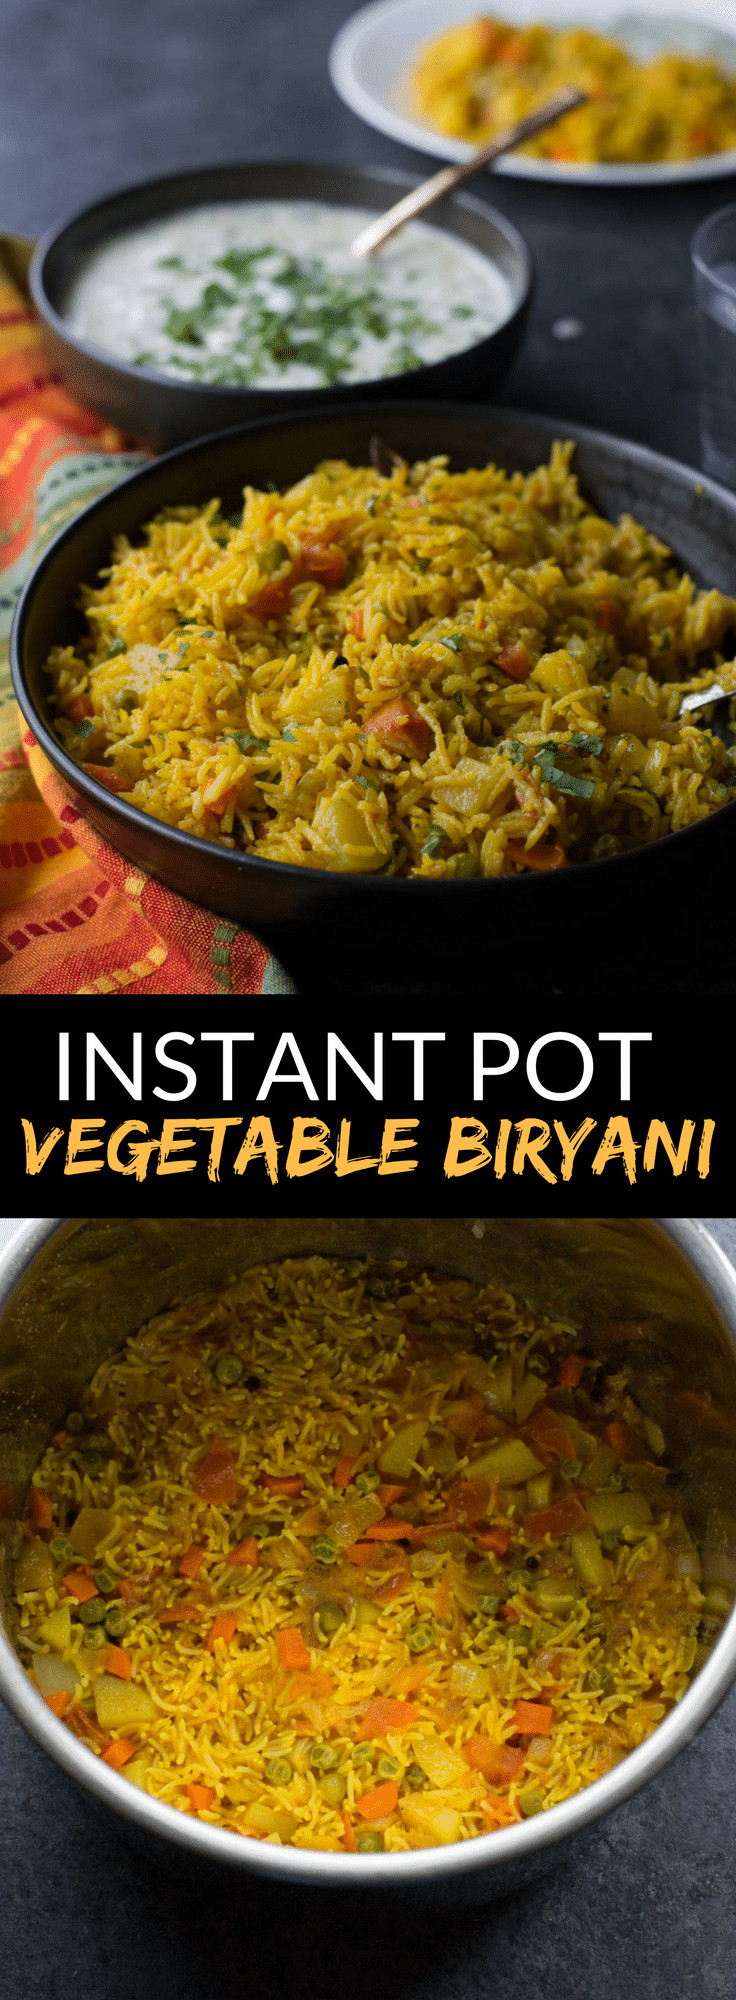 Healthy Instant Pot Recipes Vegetarian  Instant Pot Ve able biryani recipe How to make veg